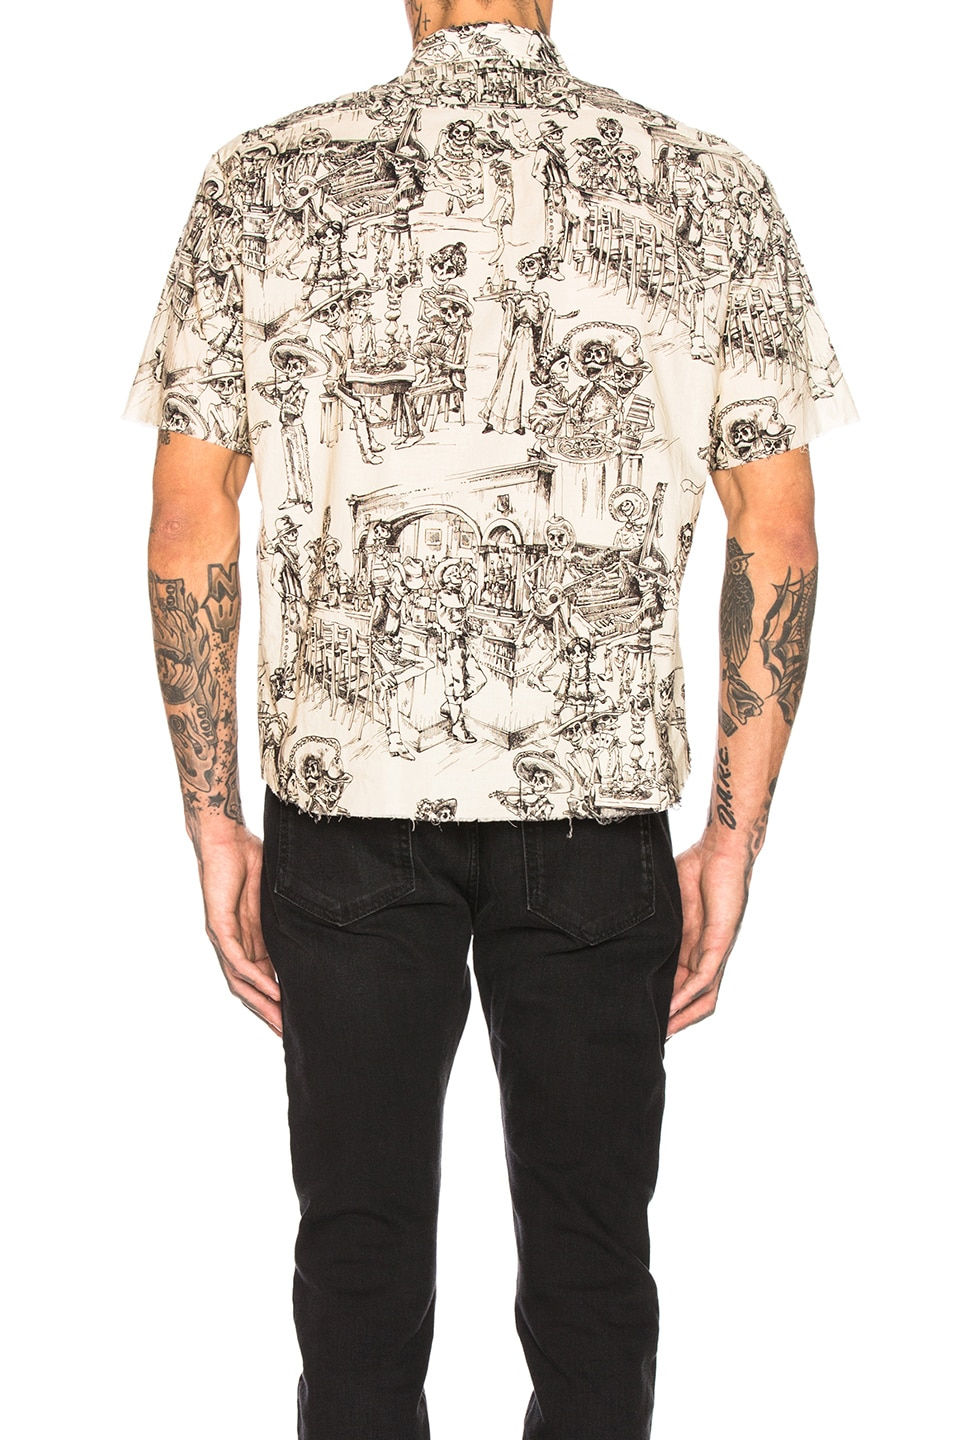 Saint Laurent Print Shirt Chalk Black low-cost